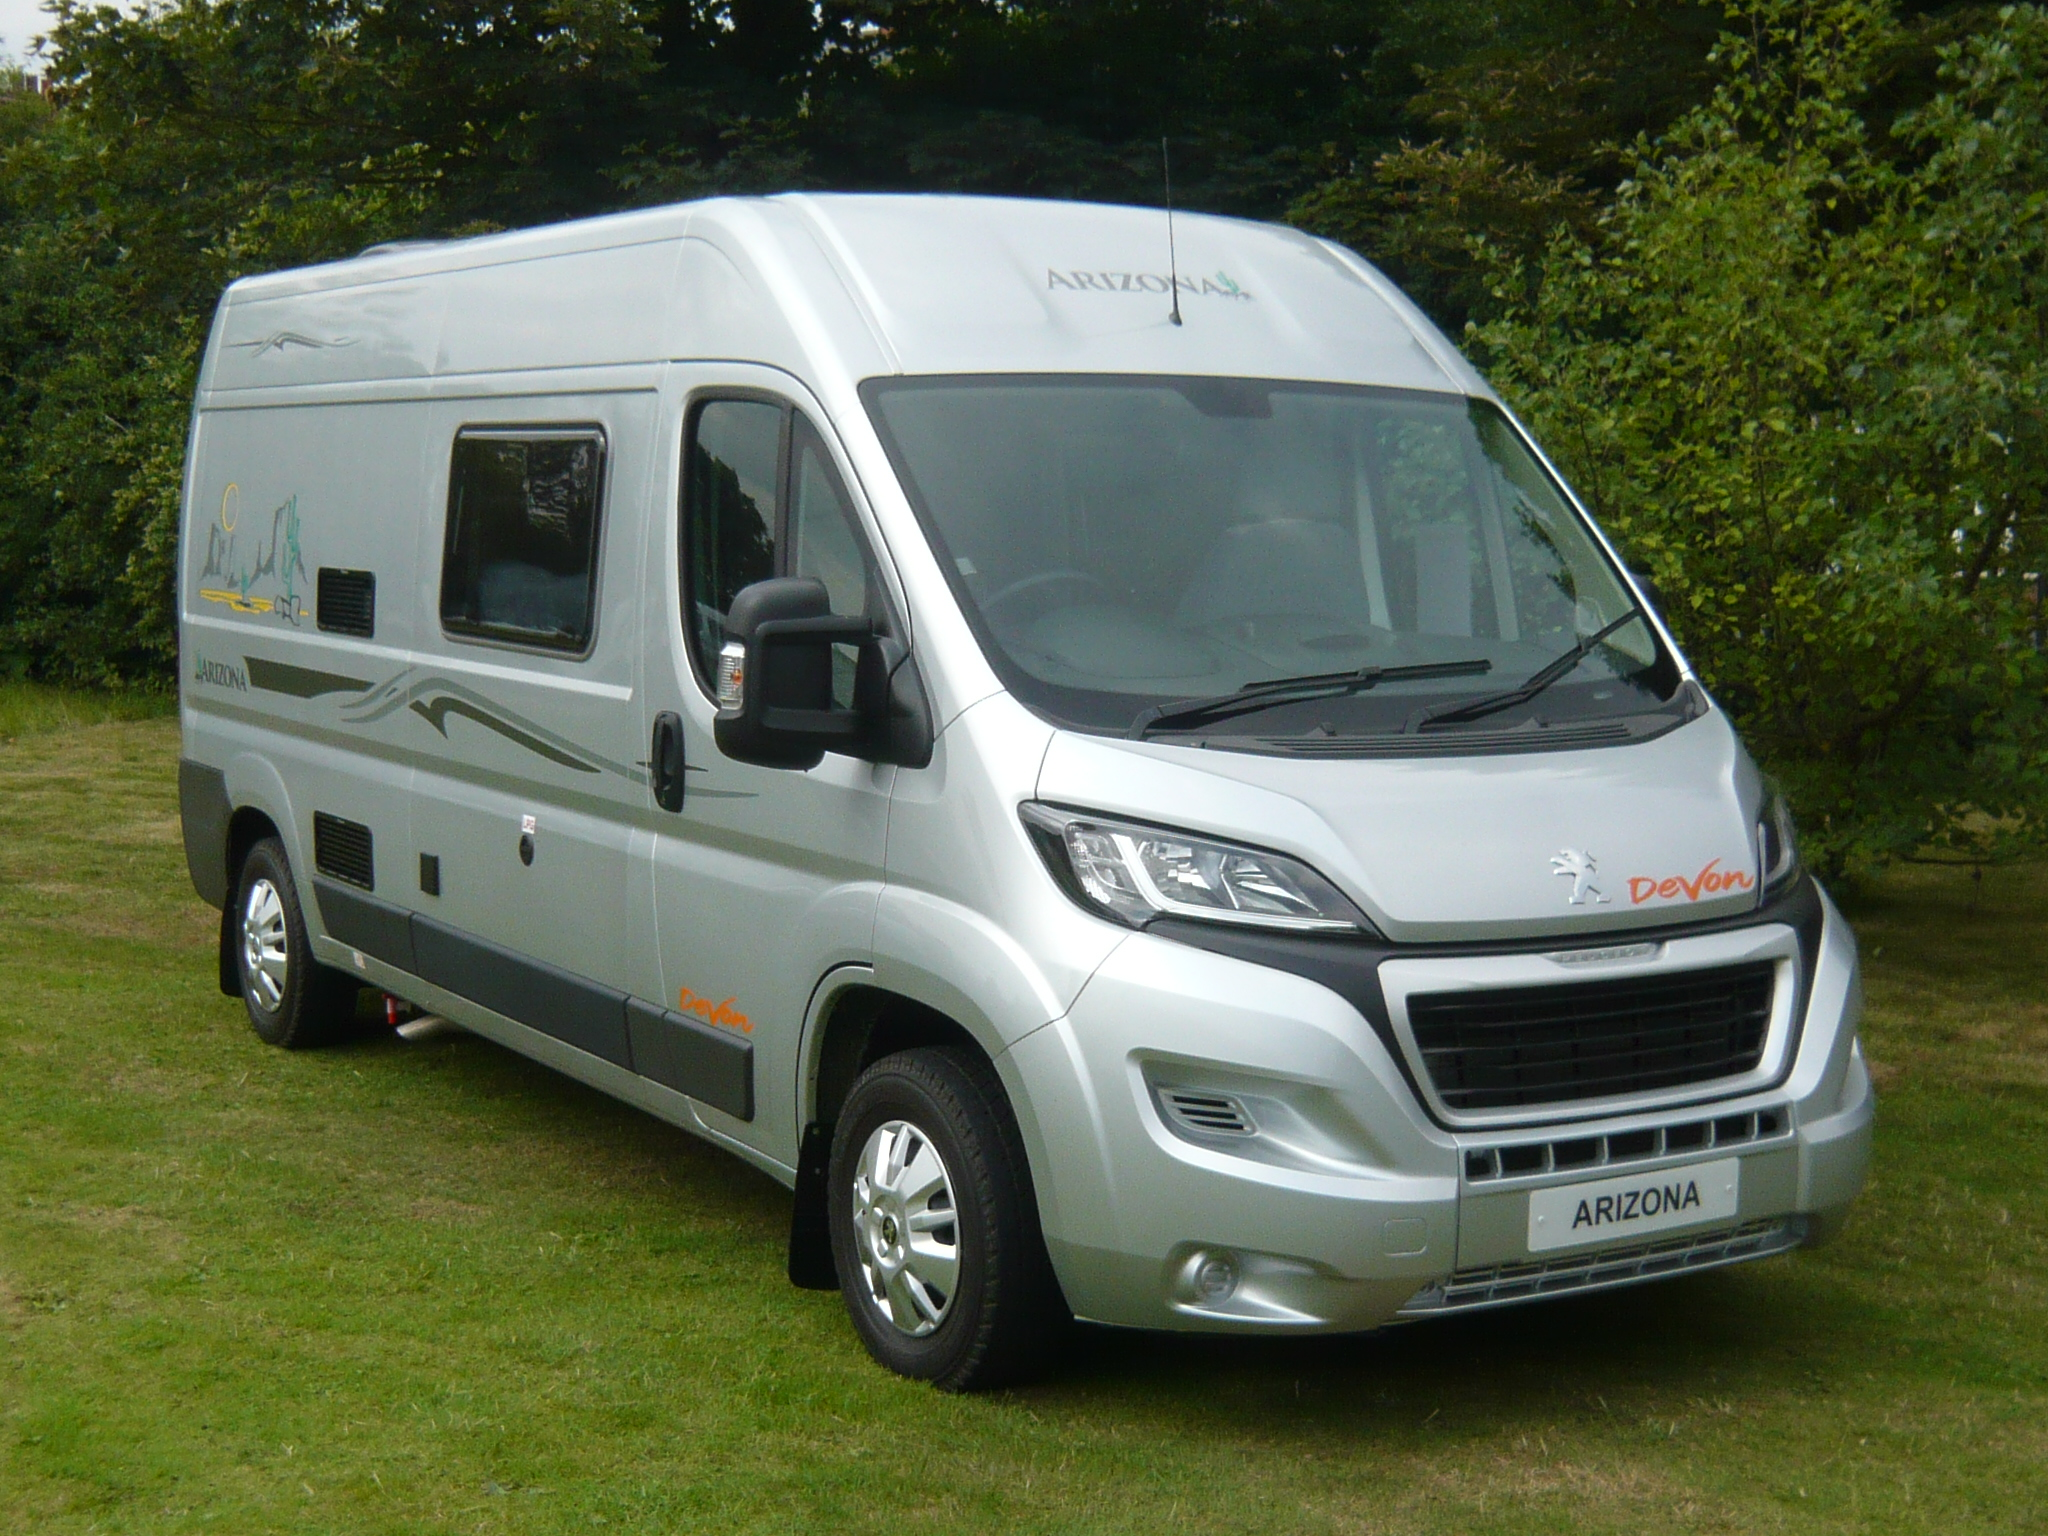 Practical Motorhome Magazine Review The Arizona